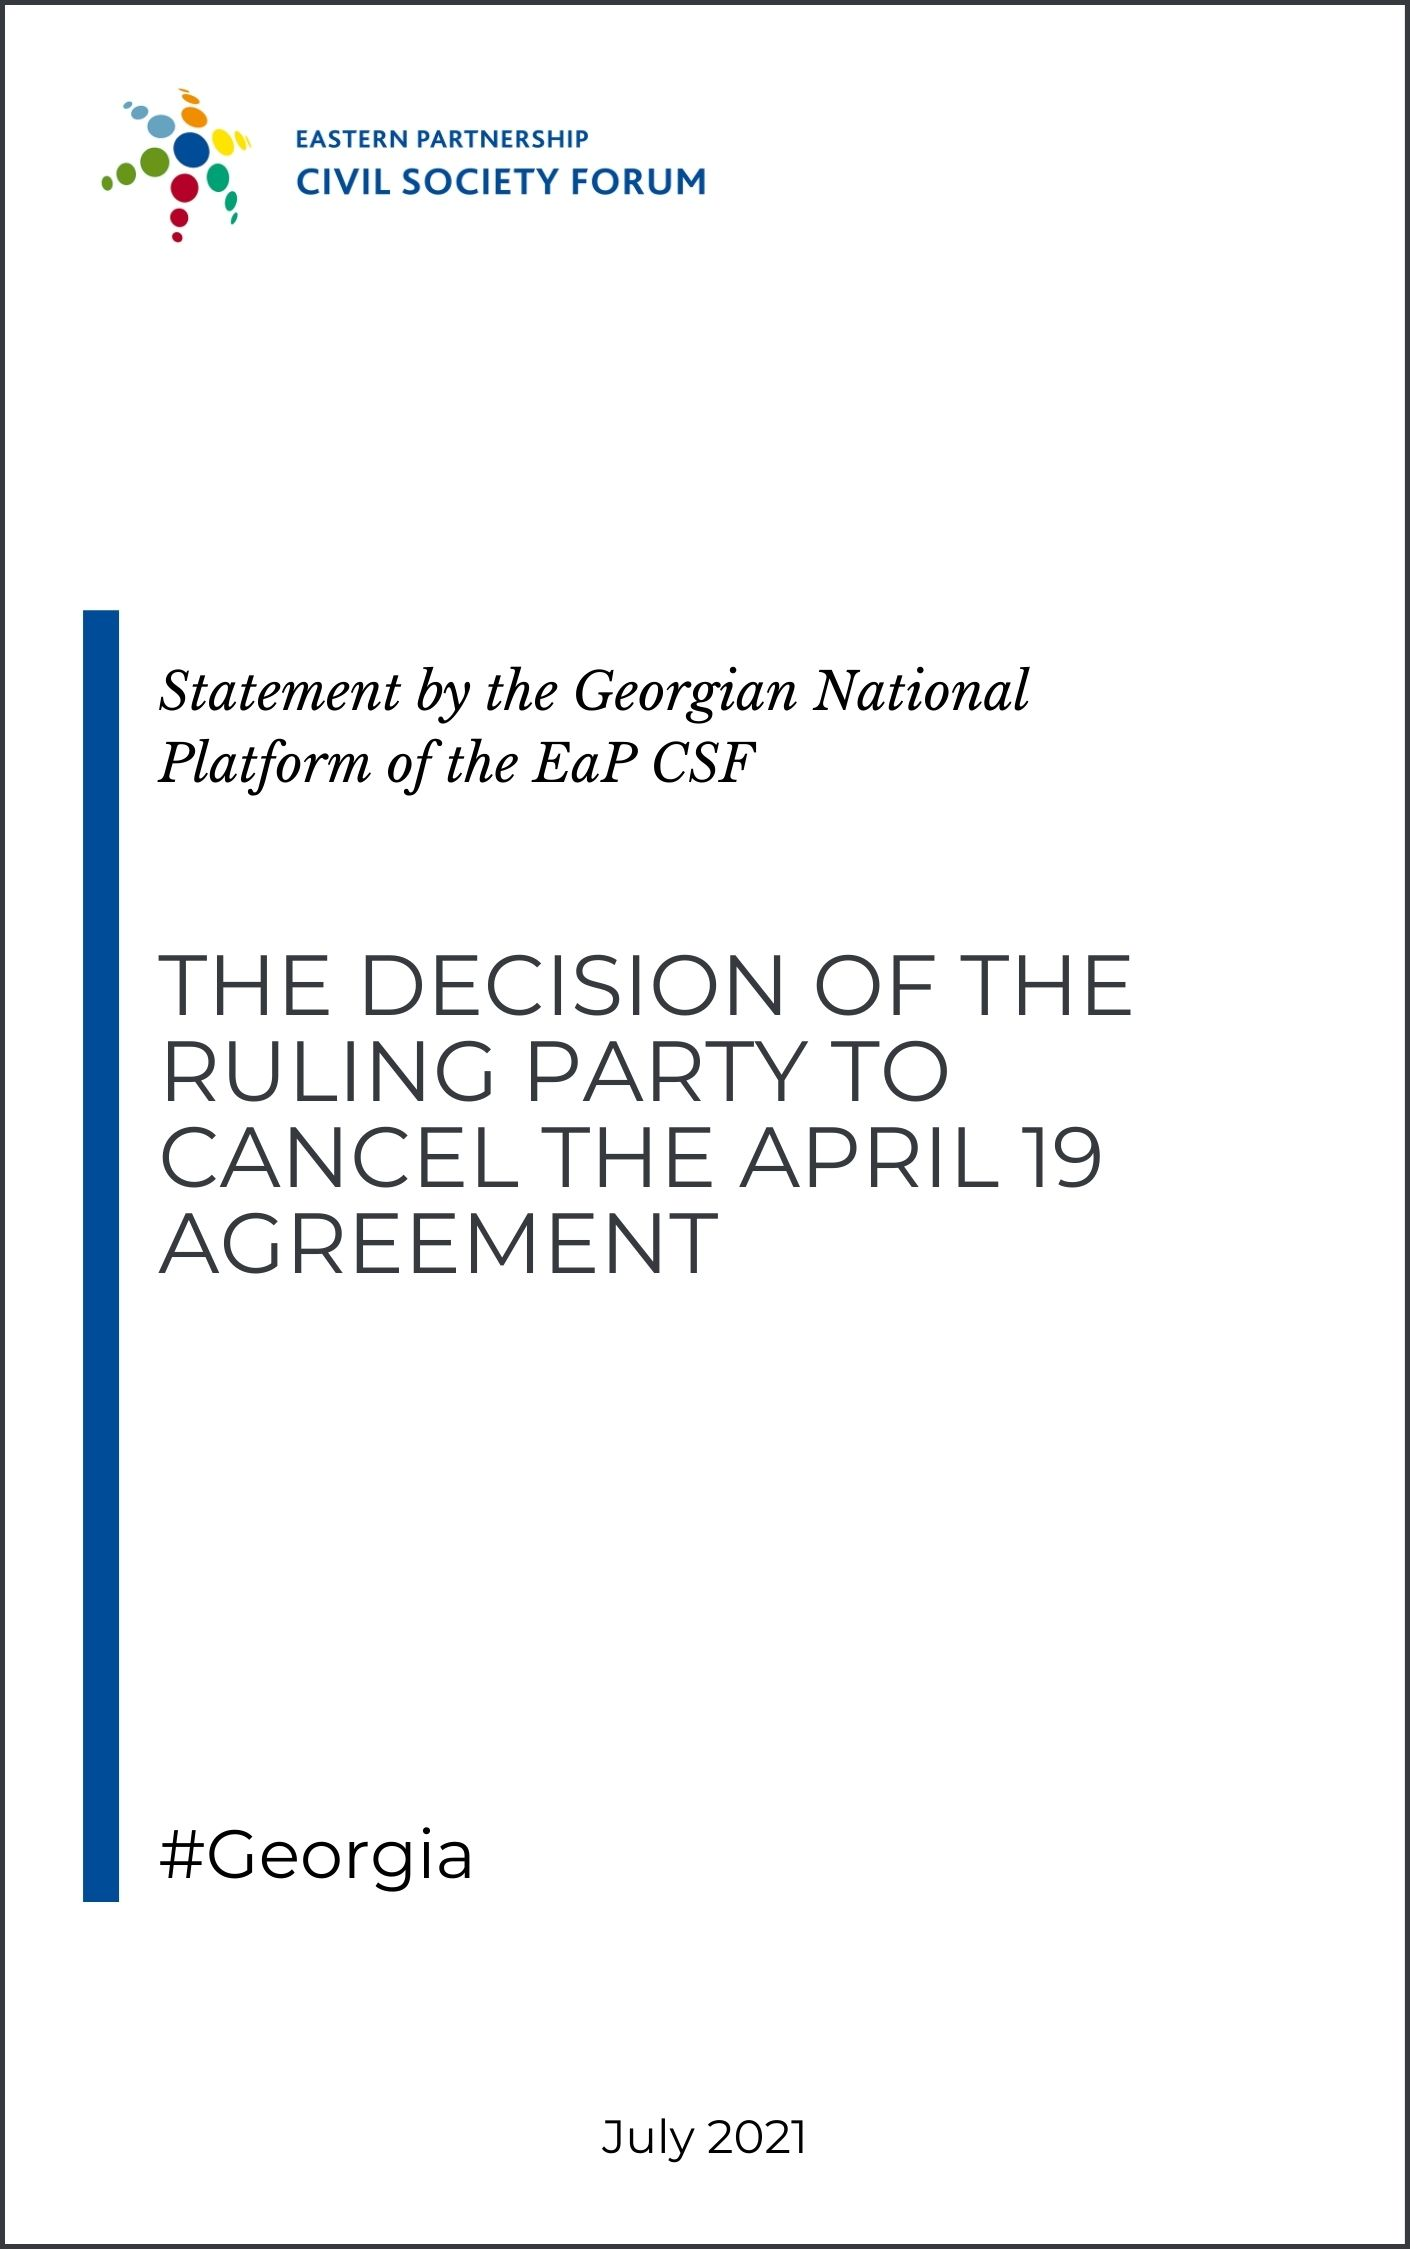 Statement of GNP on the Decision of the Ruling Party to Cancel the April 19 Agreement